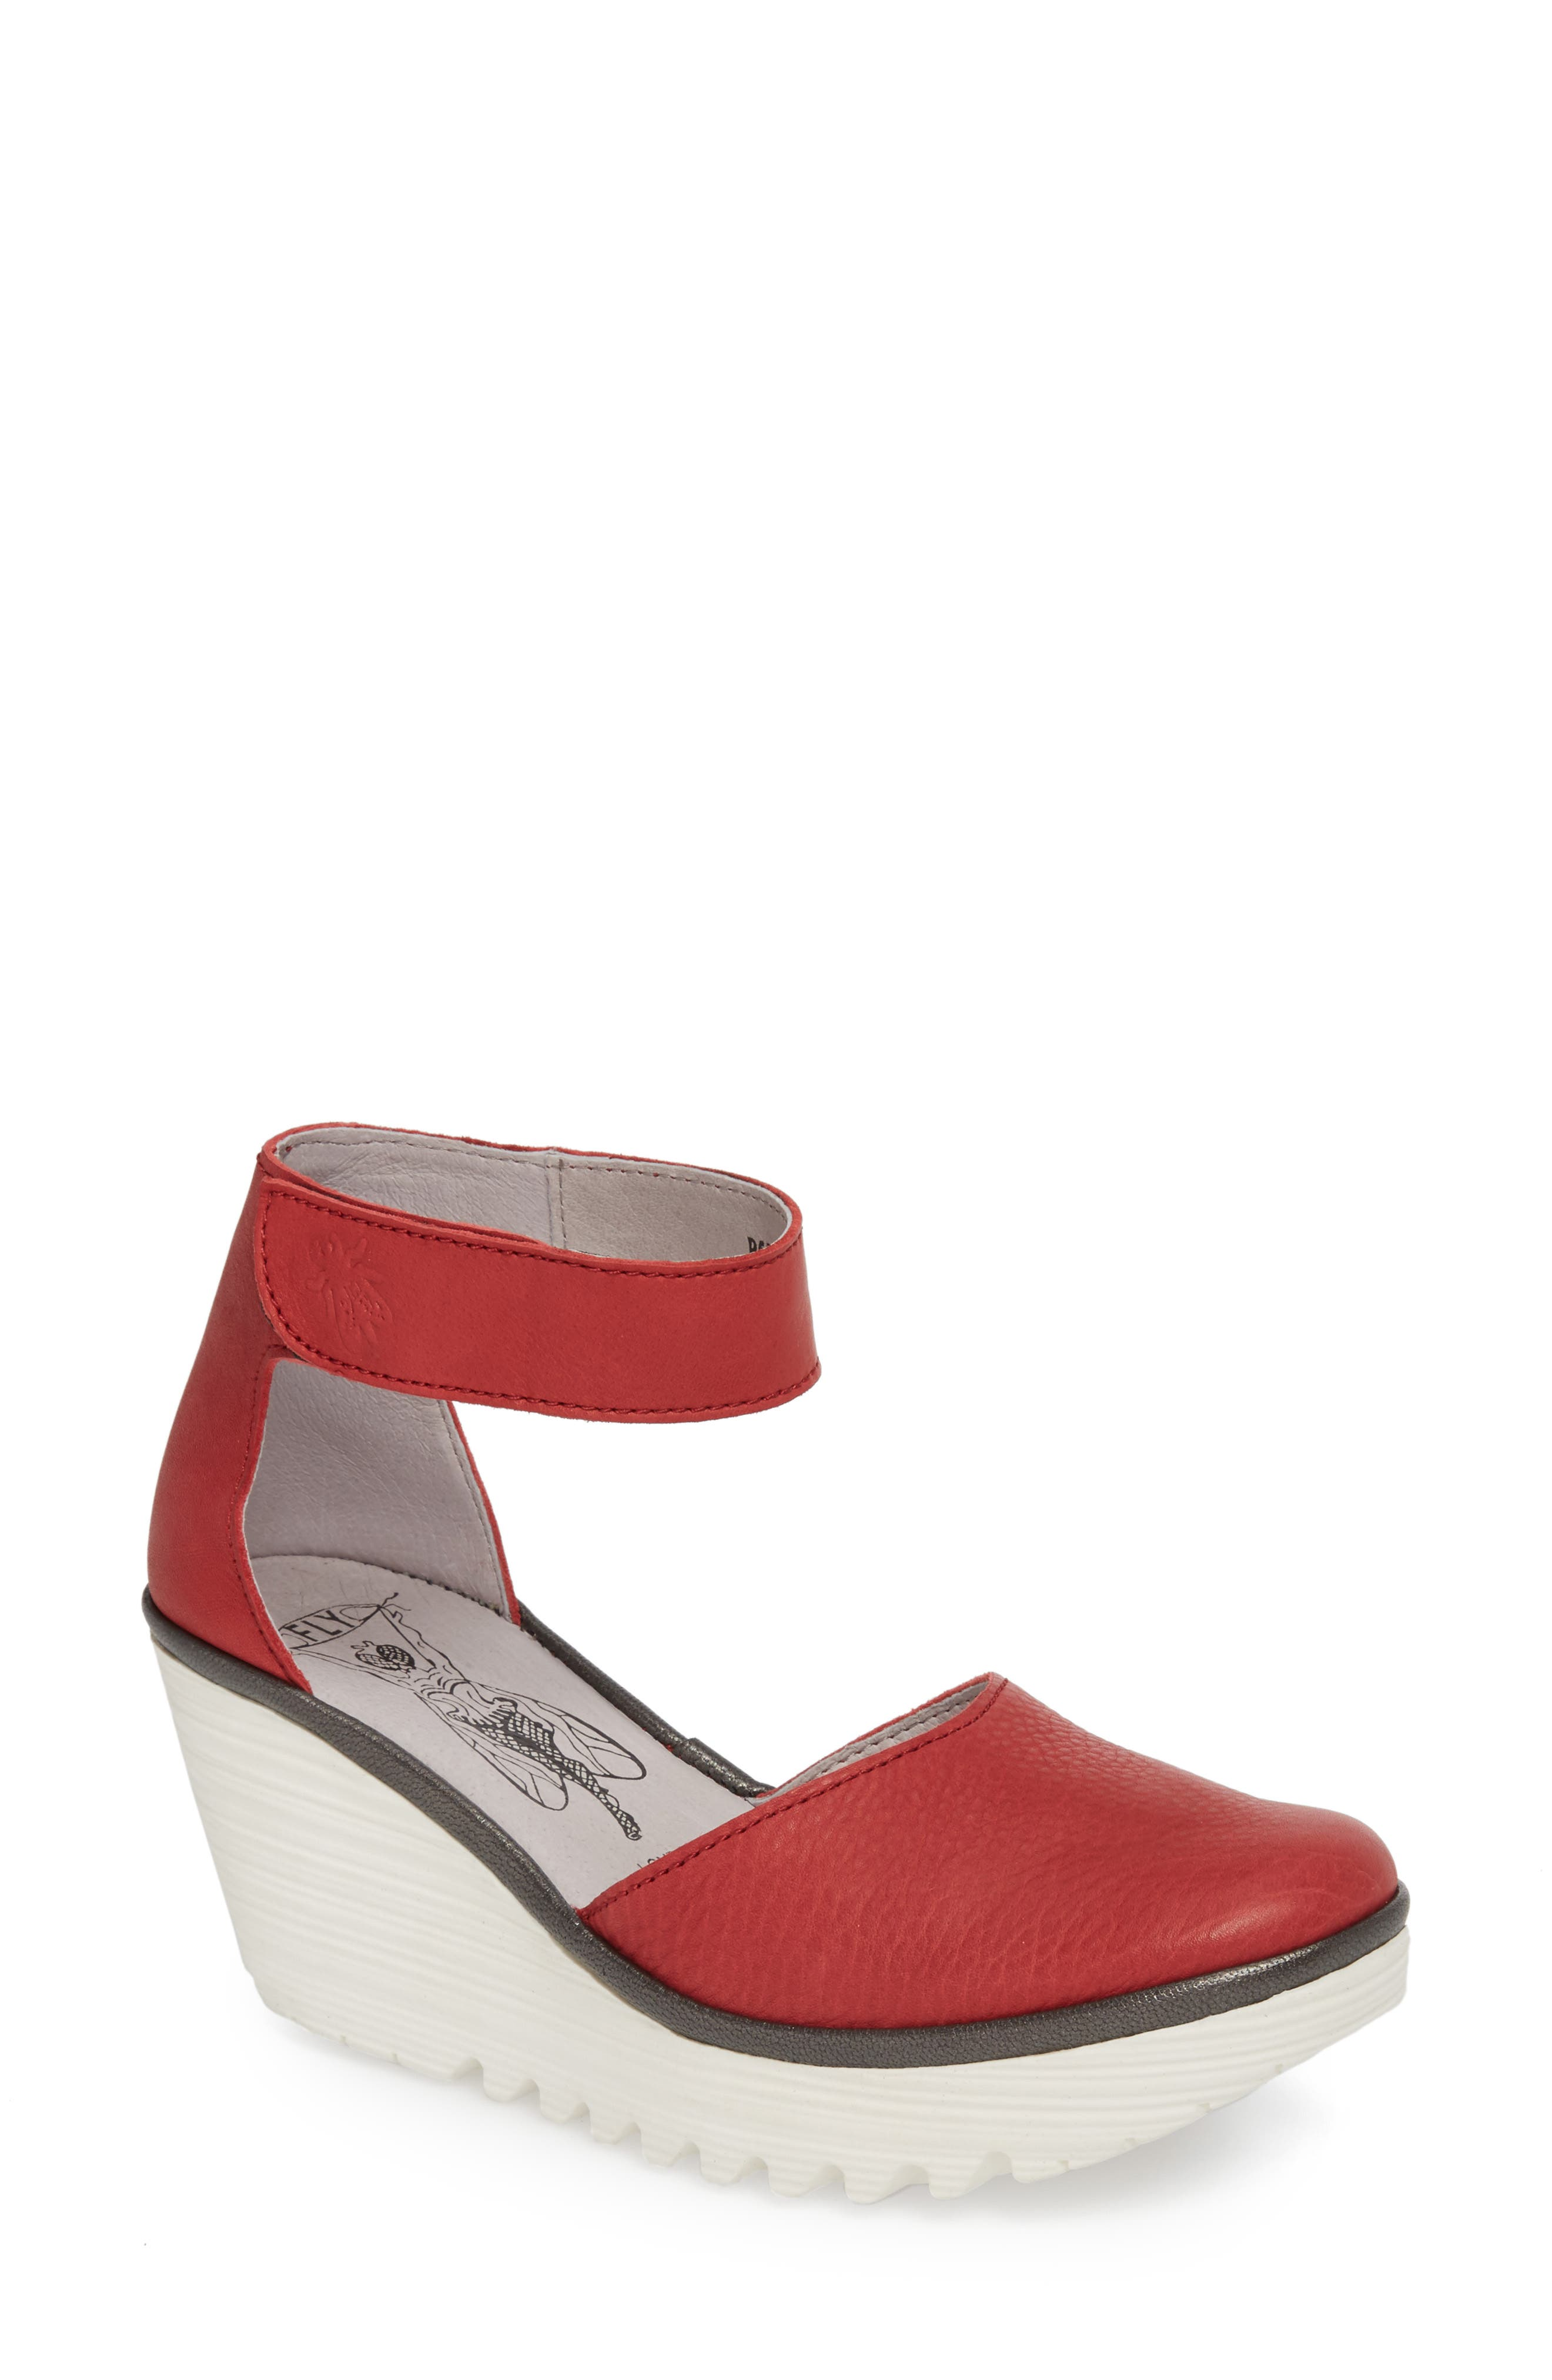 Fly London Yand Wedge Pump - Red